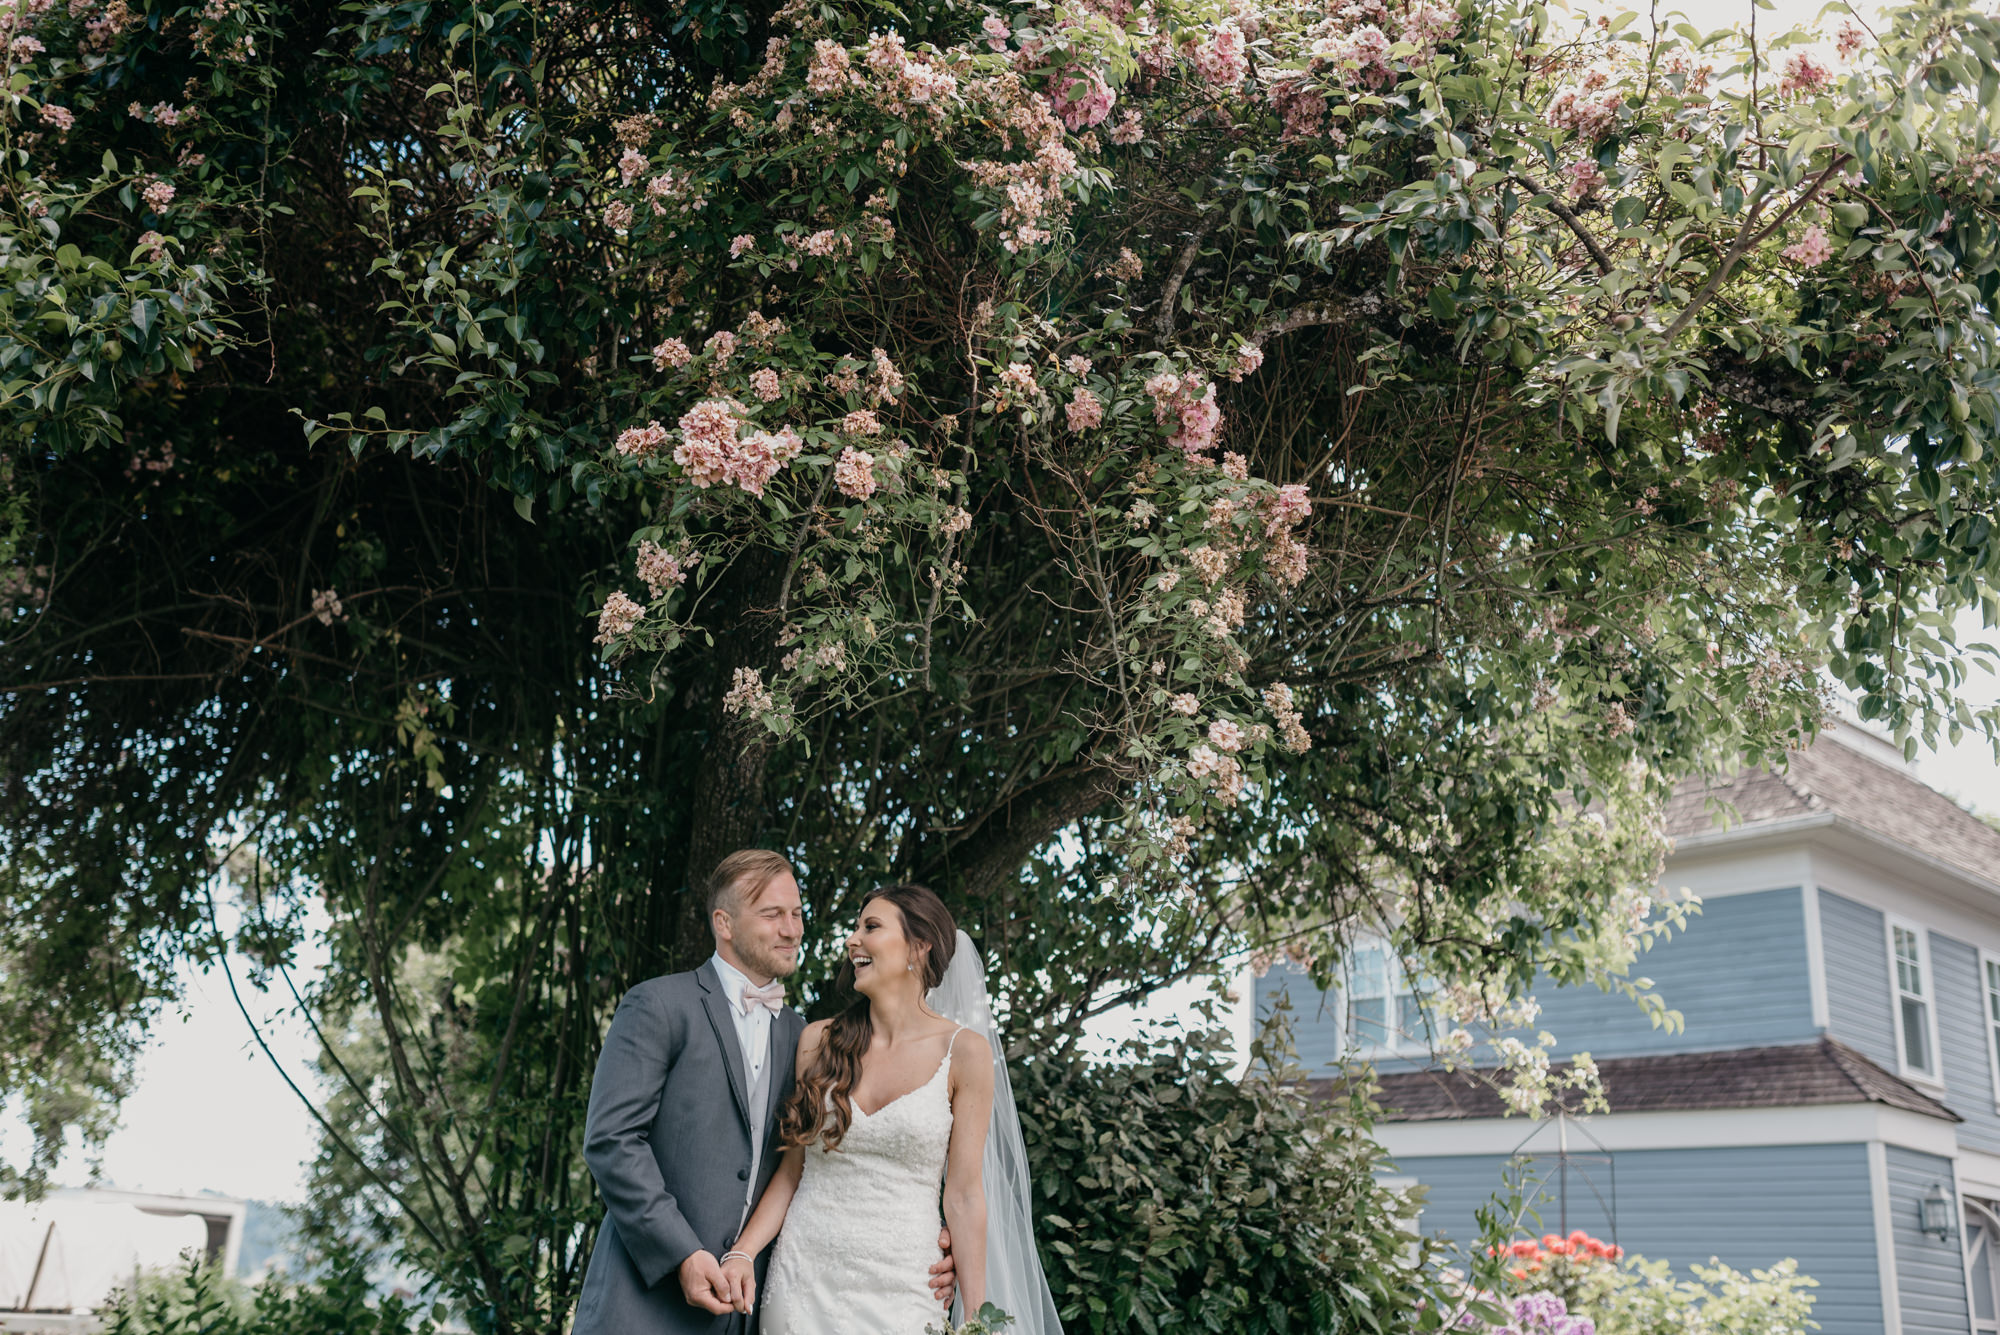 88-lake-oswego-wedding-portland-couple-rose-tree.jpg